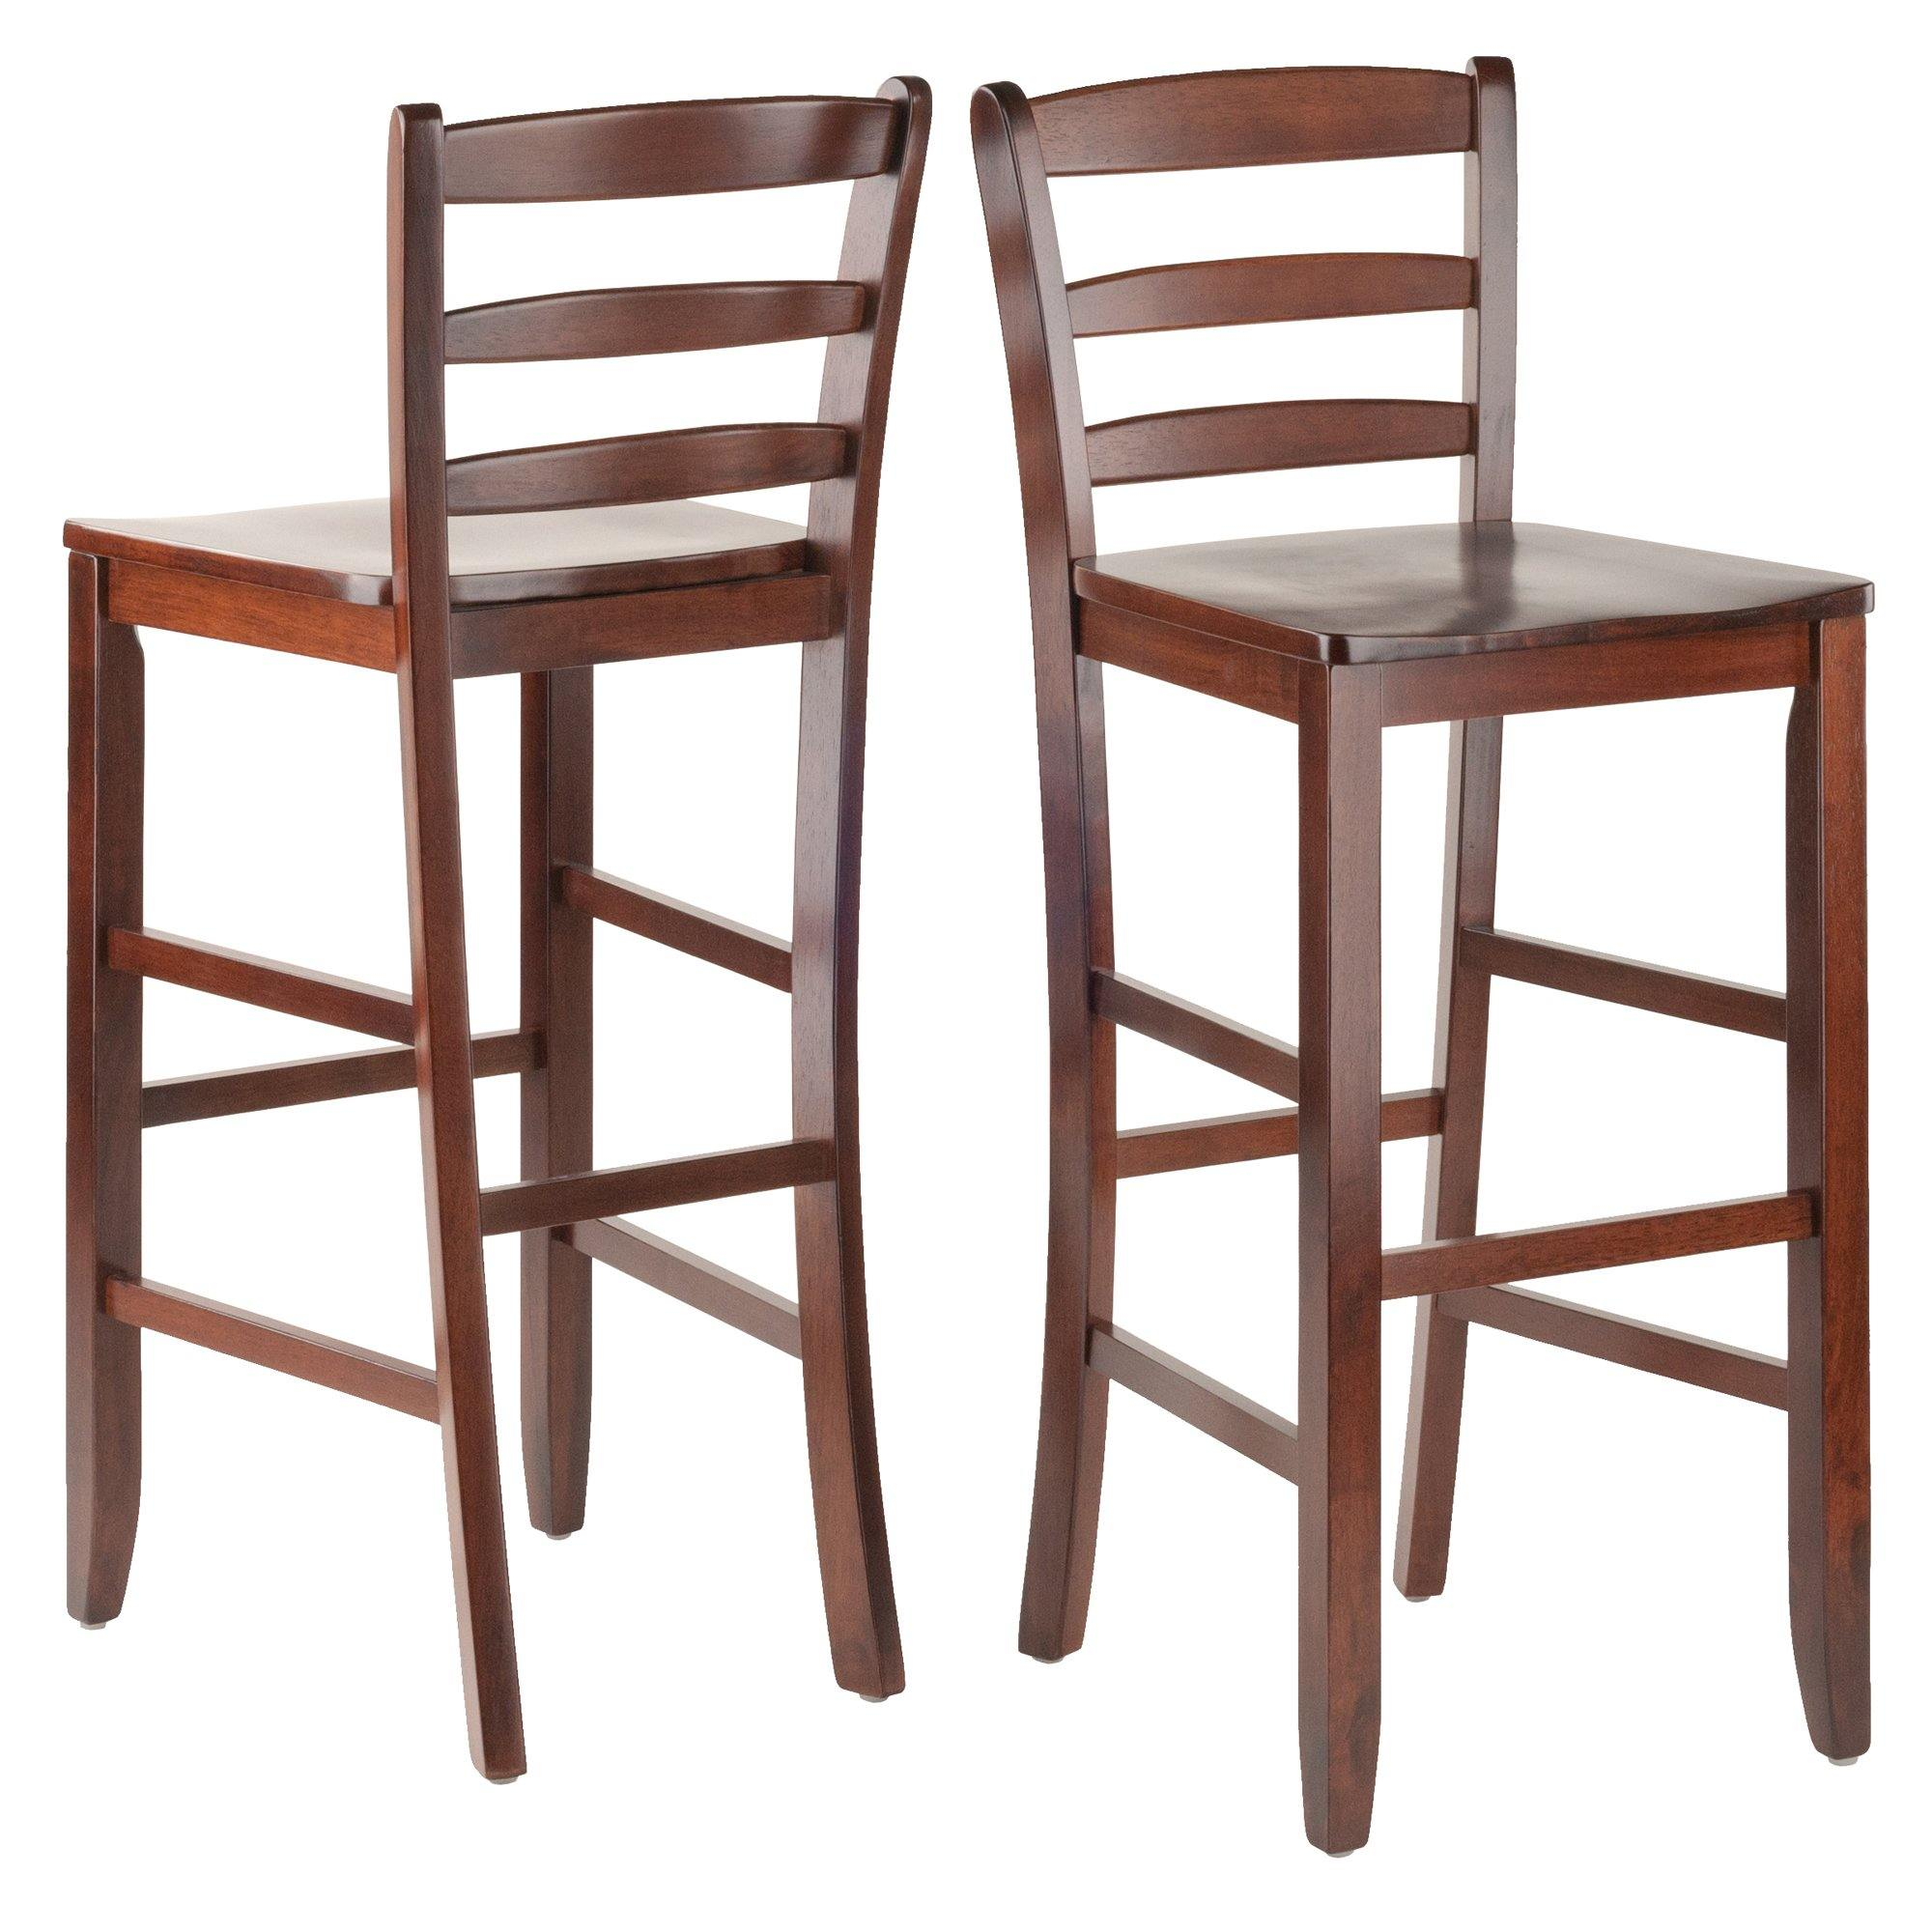 Benjamin Ladder-back Bar Stools, 2-Pc Set, Walnut - My USA Furniture